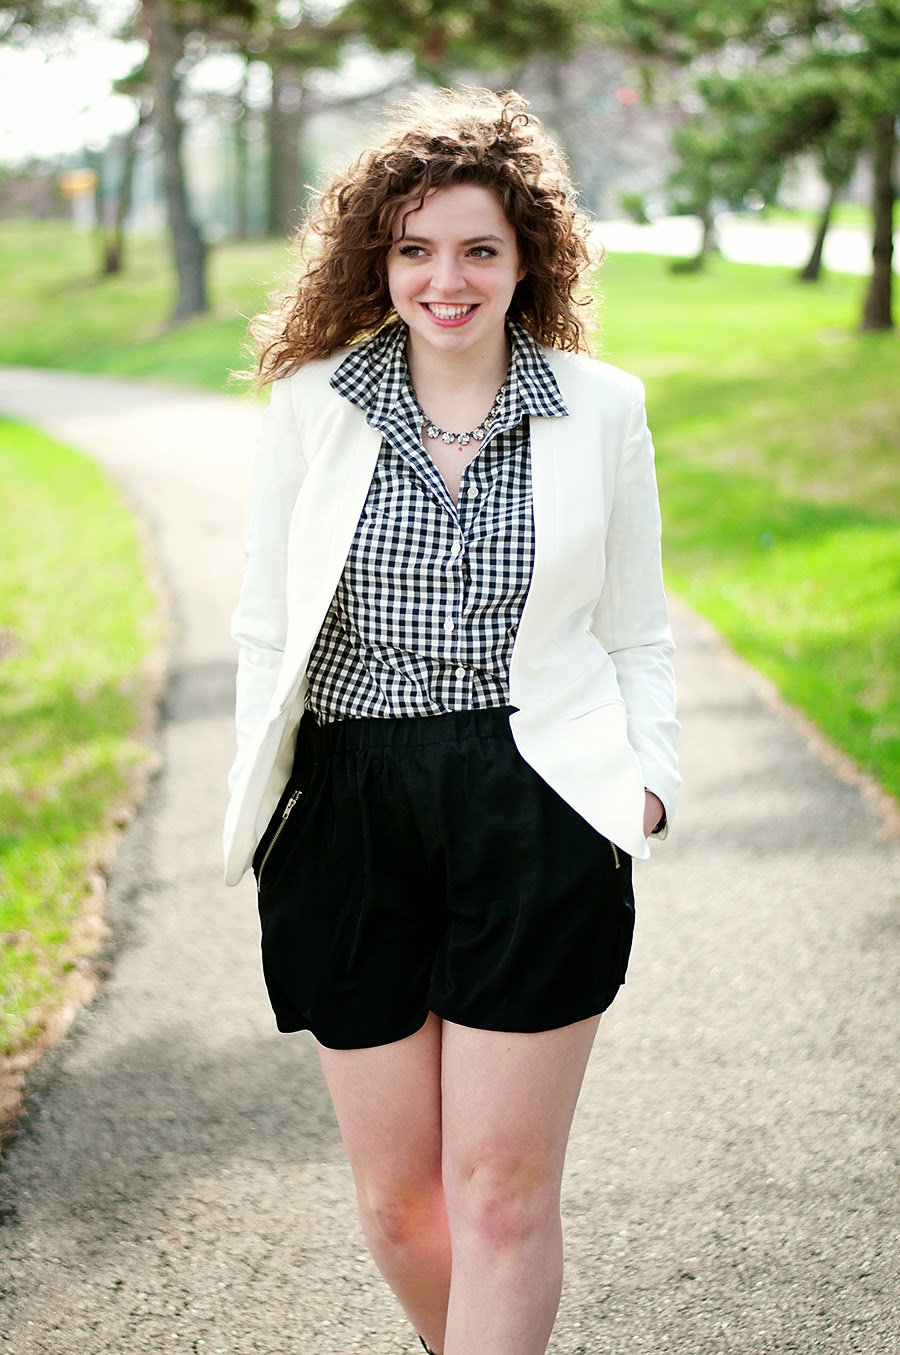 Silk shorts with blazer for spring